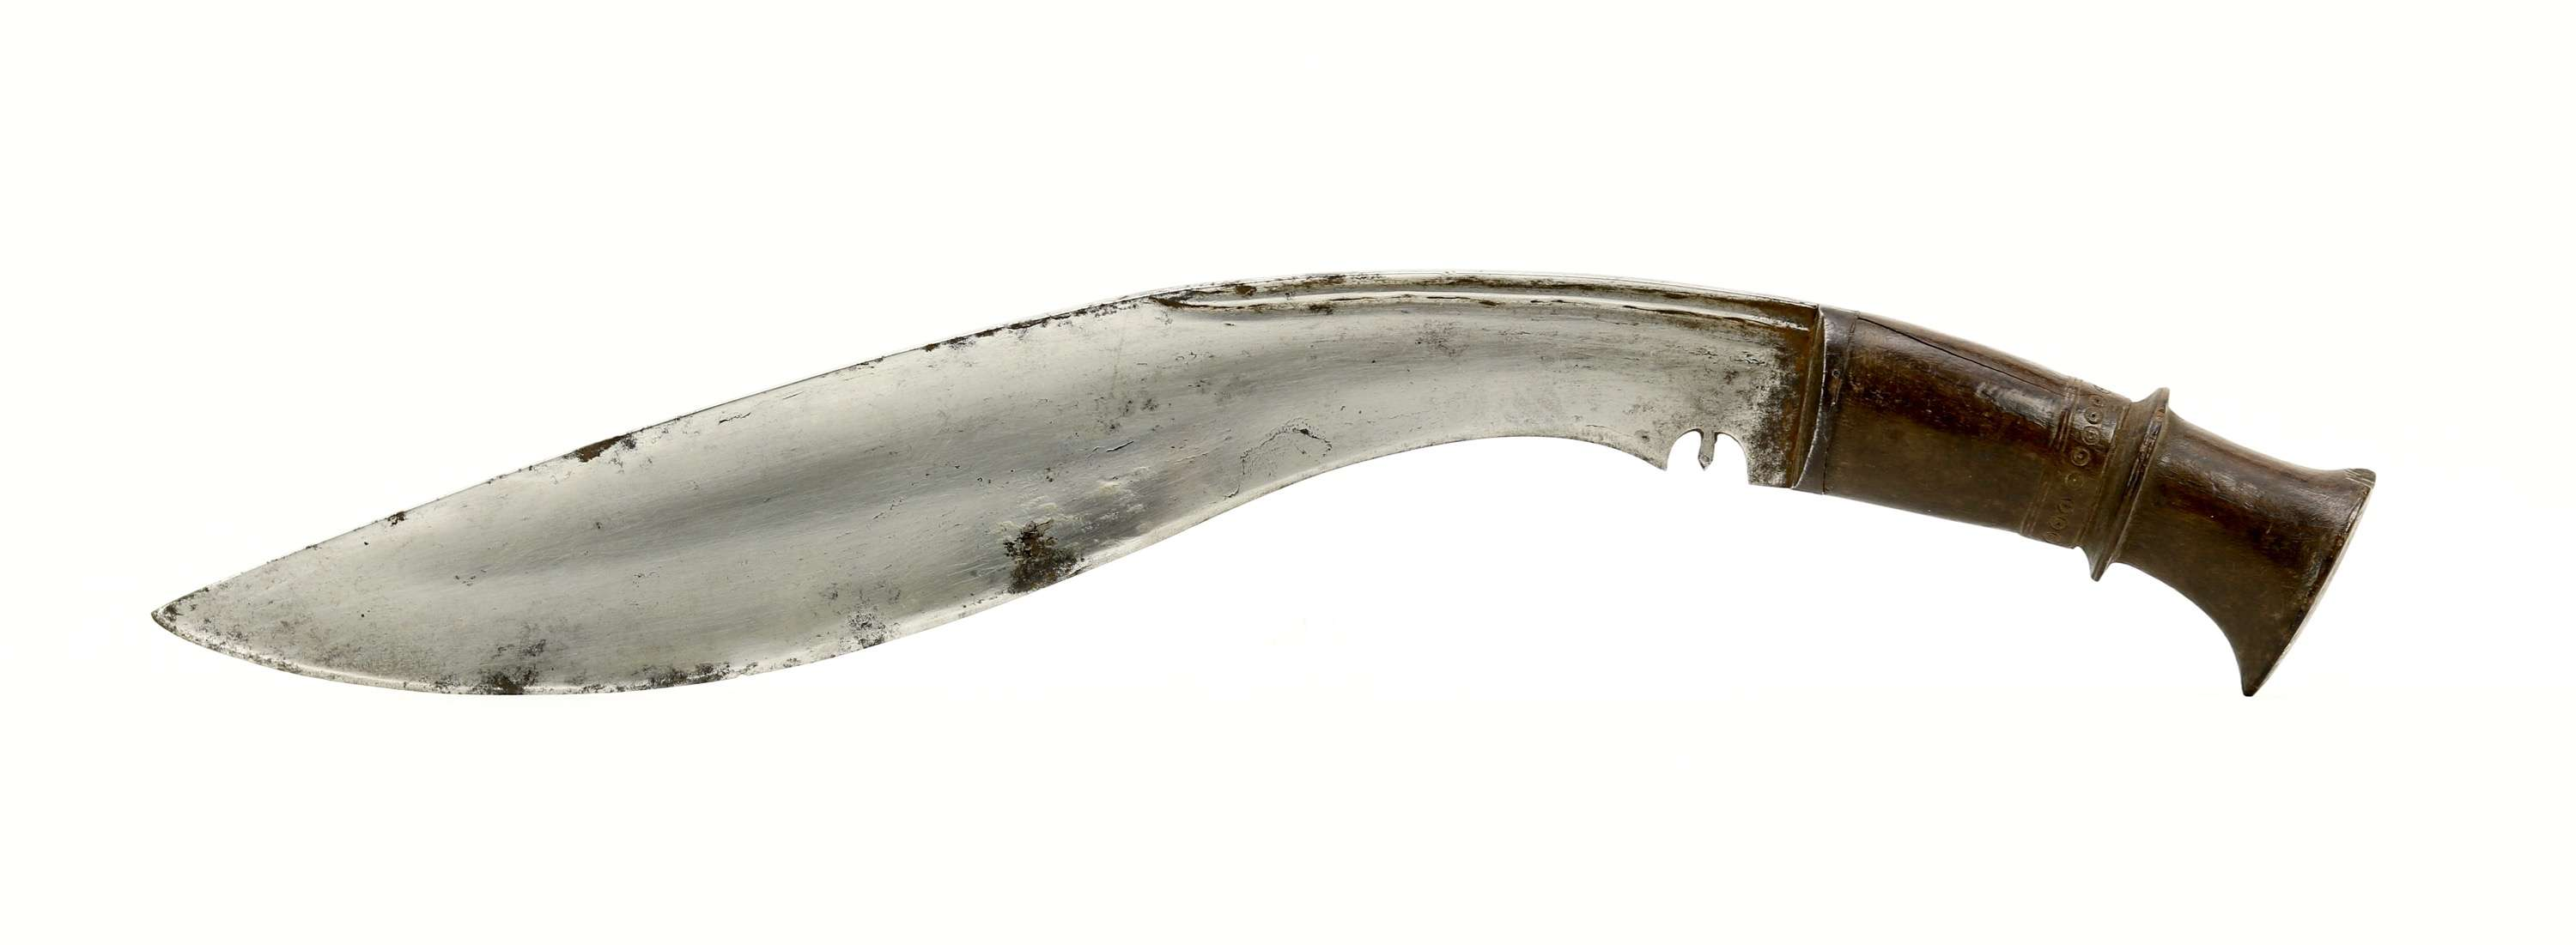 Very large silver mounted khukuri